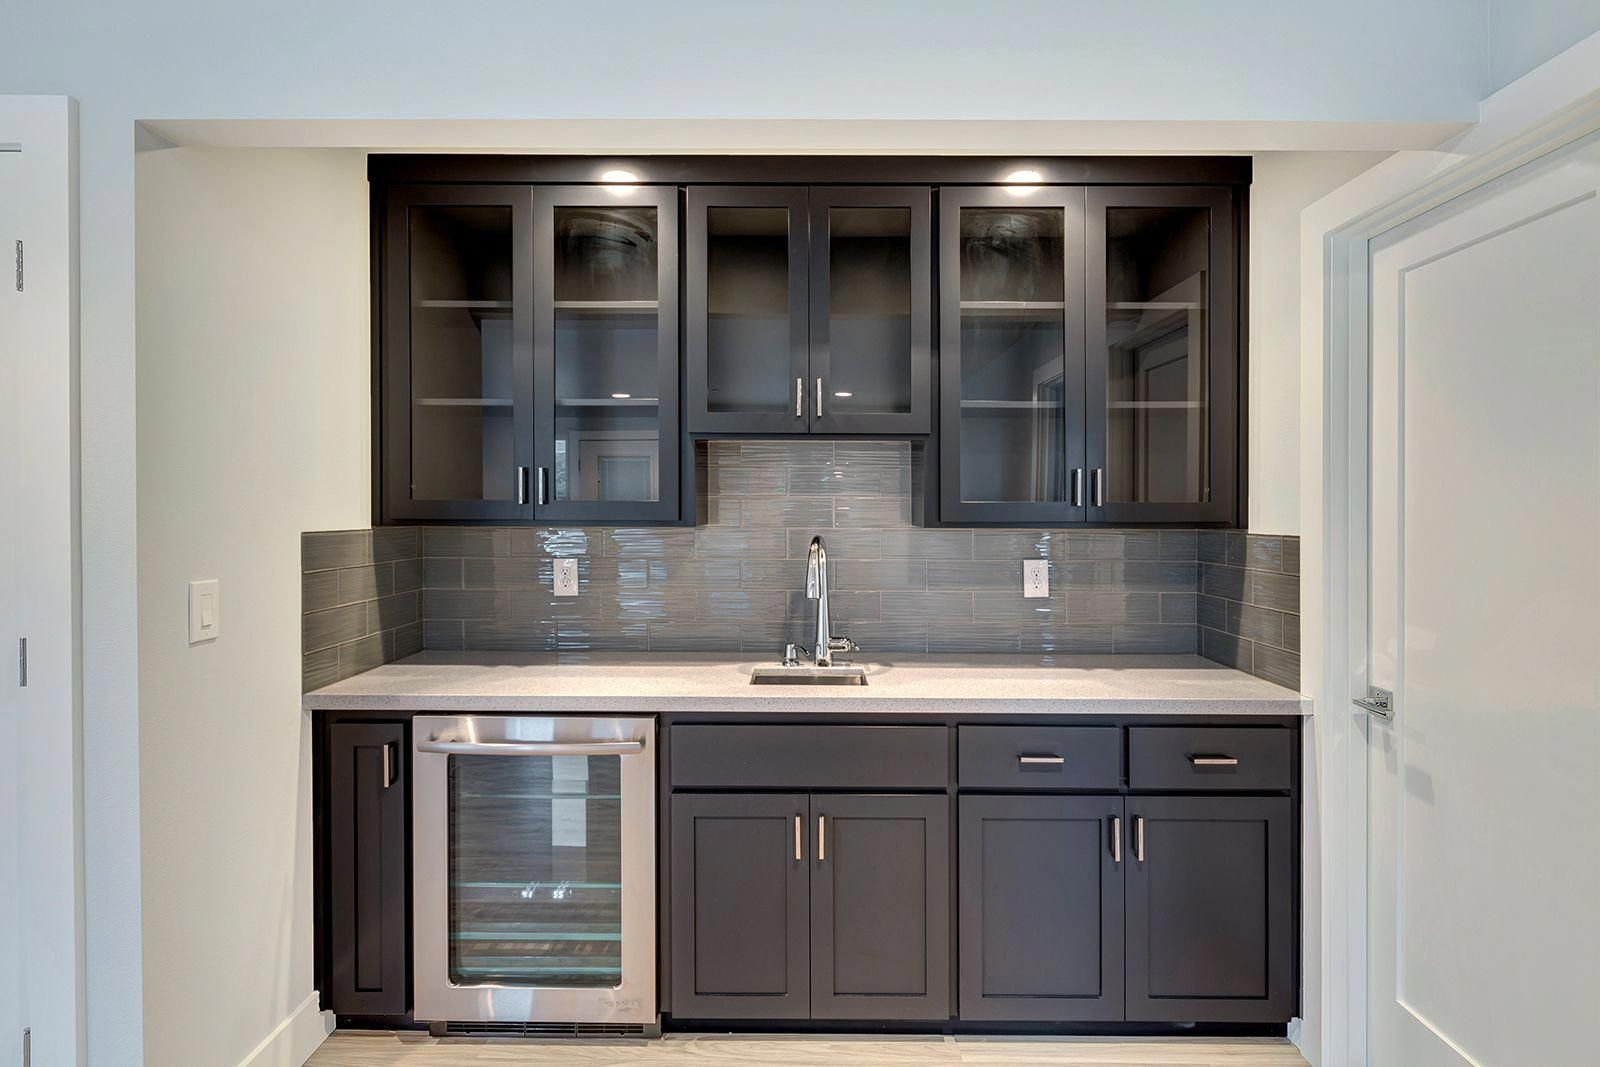 Basement Bar Kitchen With A Wine Bar White Quartz Counters And Glass Cabinets Uppers Greatnwhomes Billjohns Basement Bar Bars For Home Basement Kitchenette